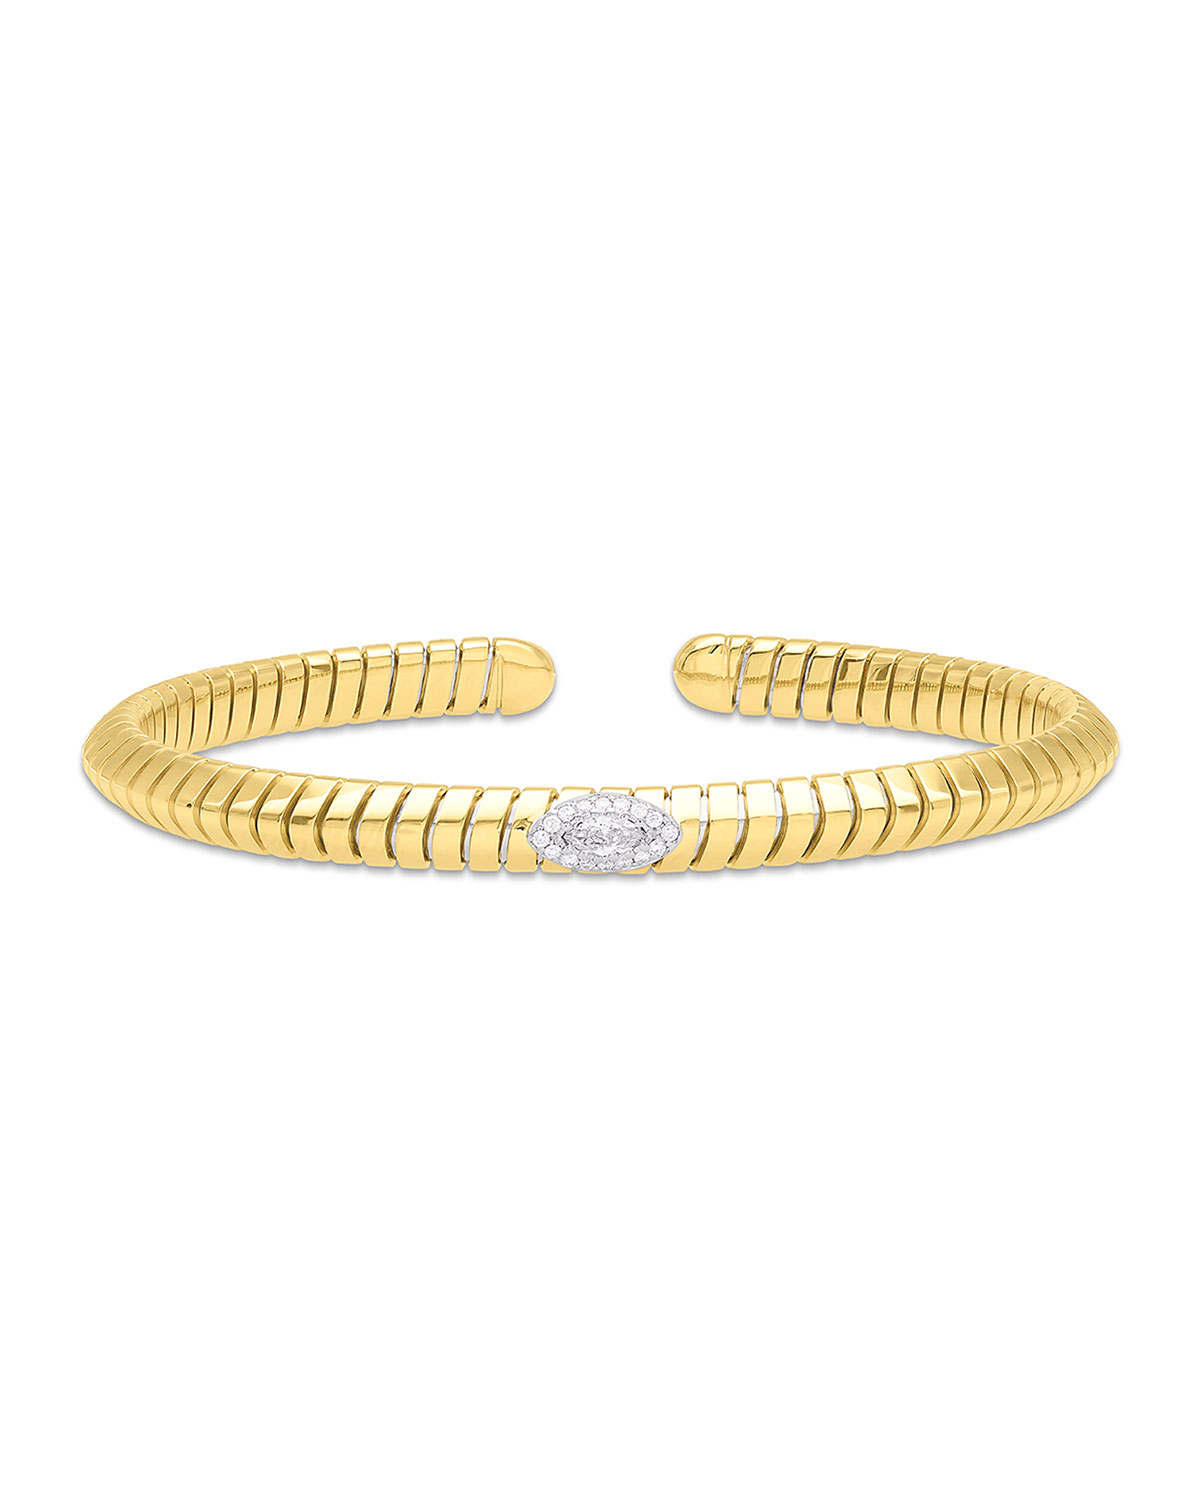 MARINA B Trisola 18K Diamond Navetta Bangle, Size S